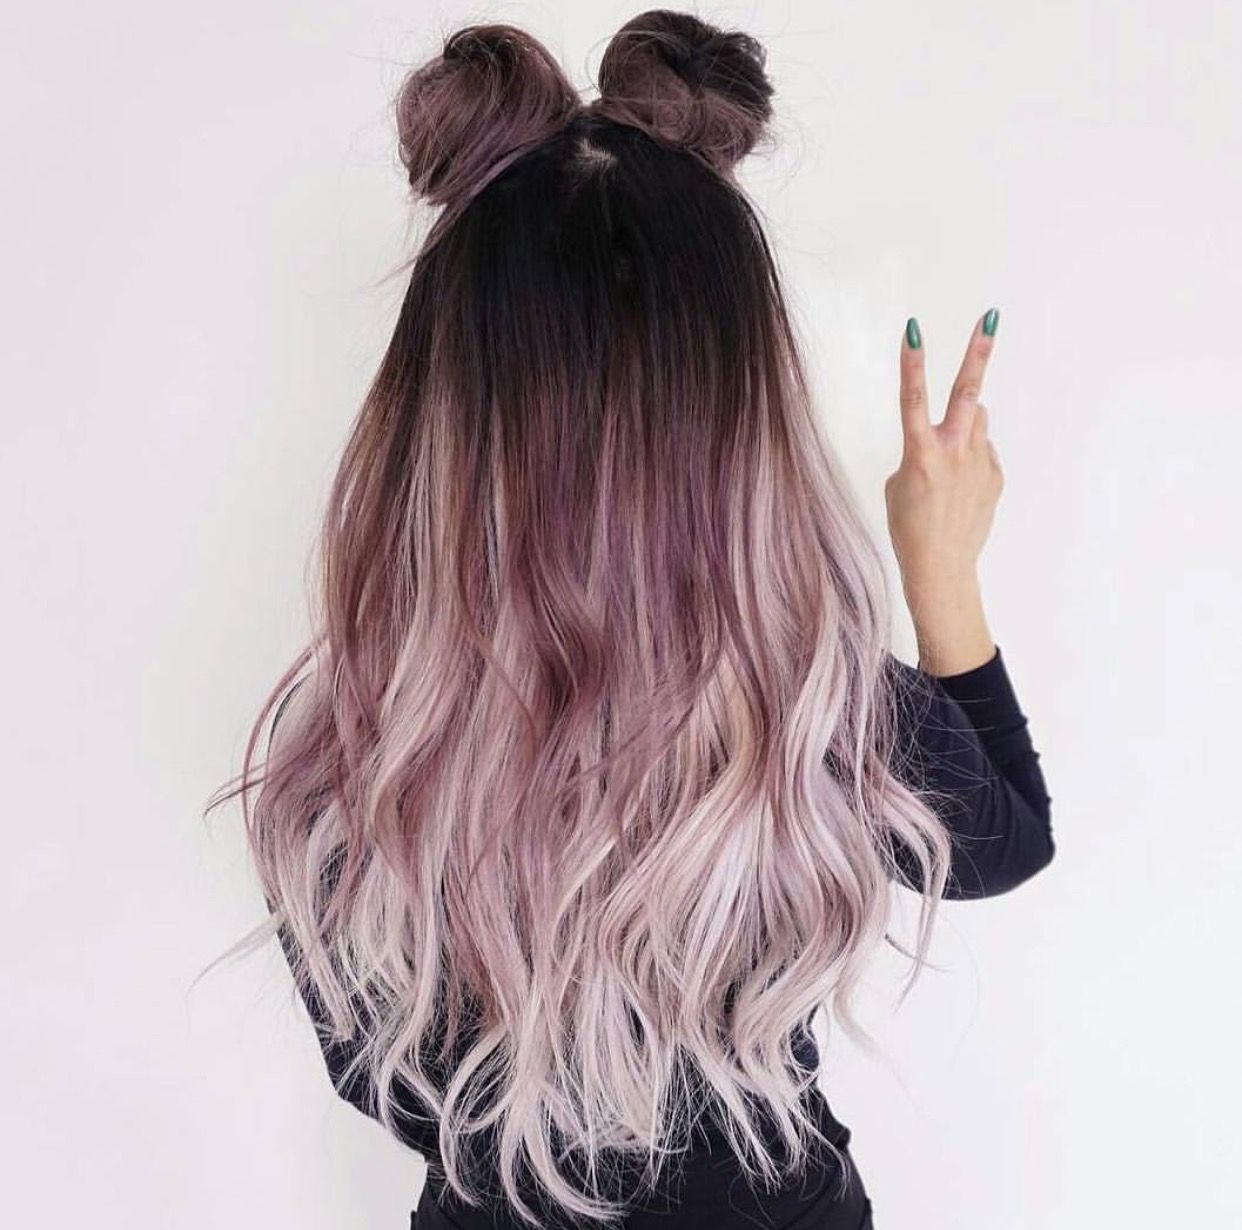 Awesome rockin hairstyle and color. Ombre dark to light